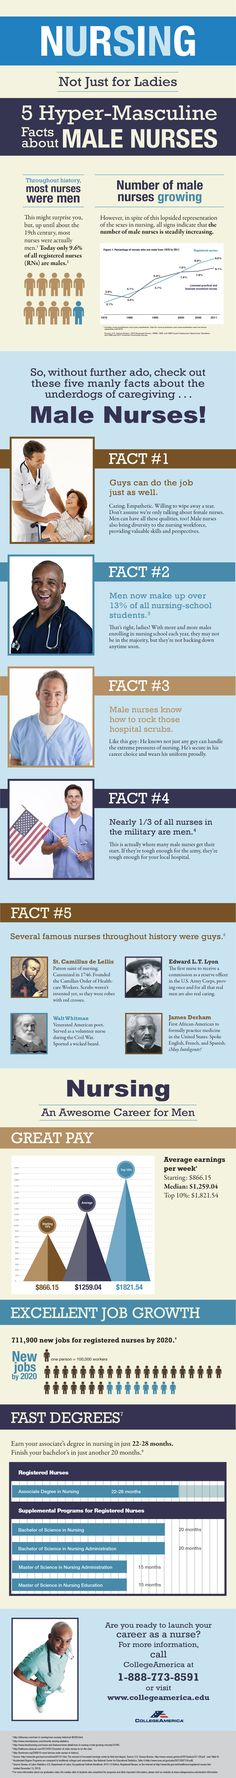 Men in #Nursing: 5 Facts about Male Nurses - Infographic #Nurses